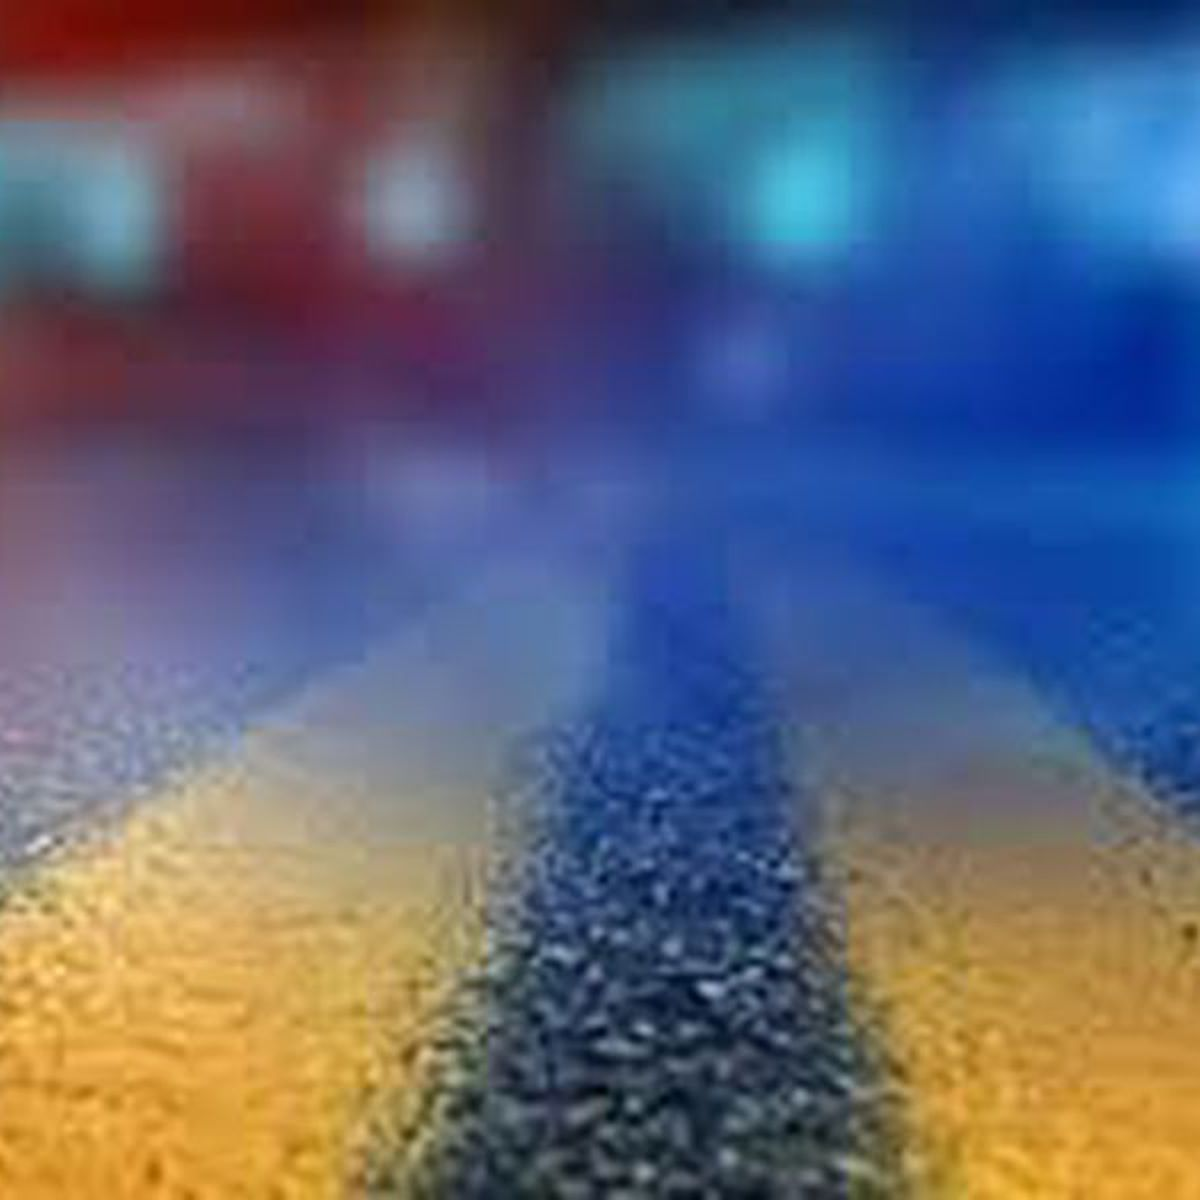 Motorcyclist killed in head-on crash after car swerves into his lane in Erie County